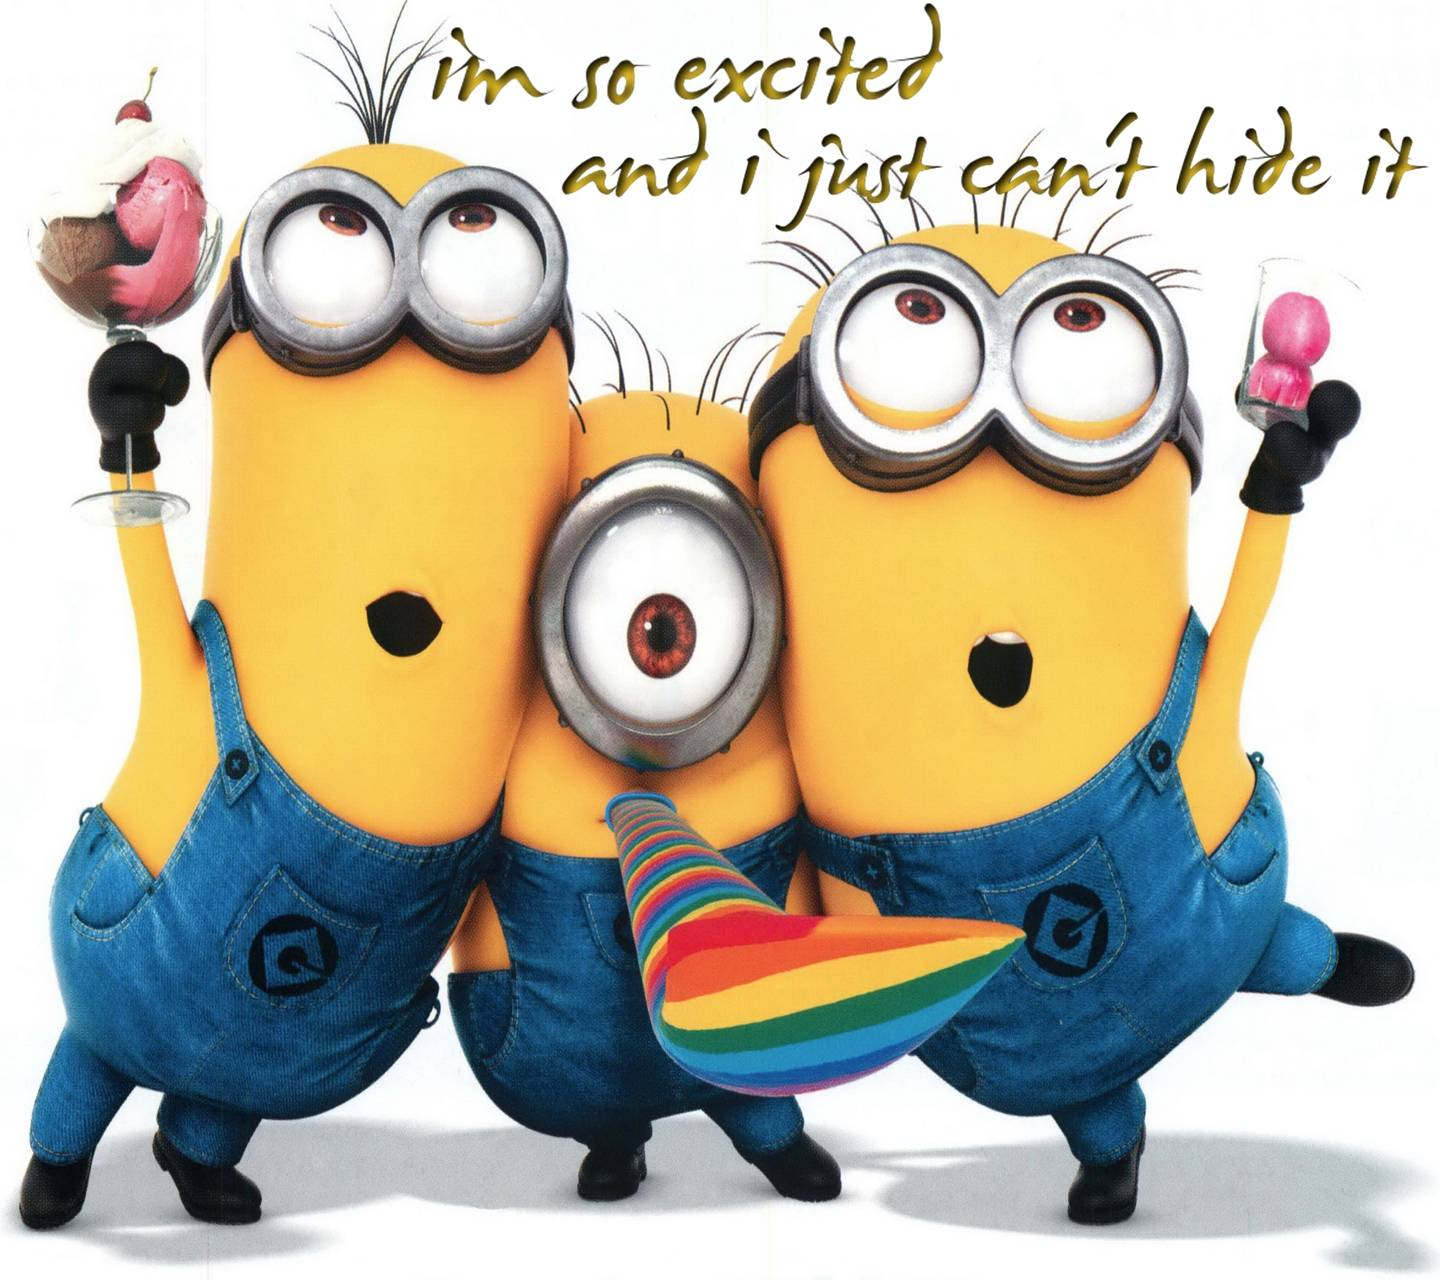 Im So Excited wallpaper by PerfumeVanilla - 1f - Free on ZEDGE™